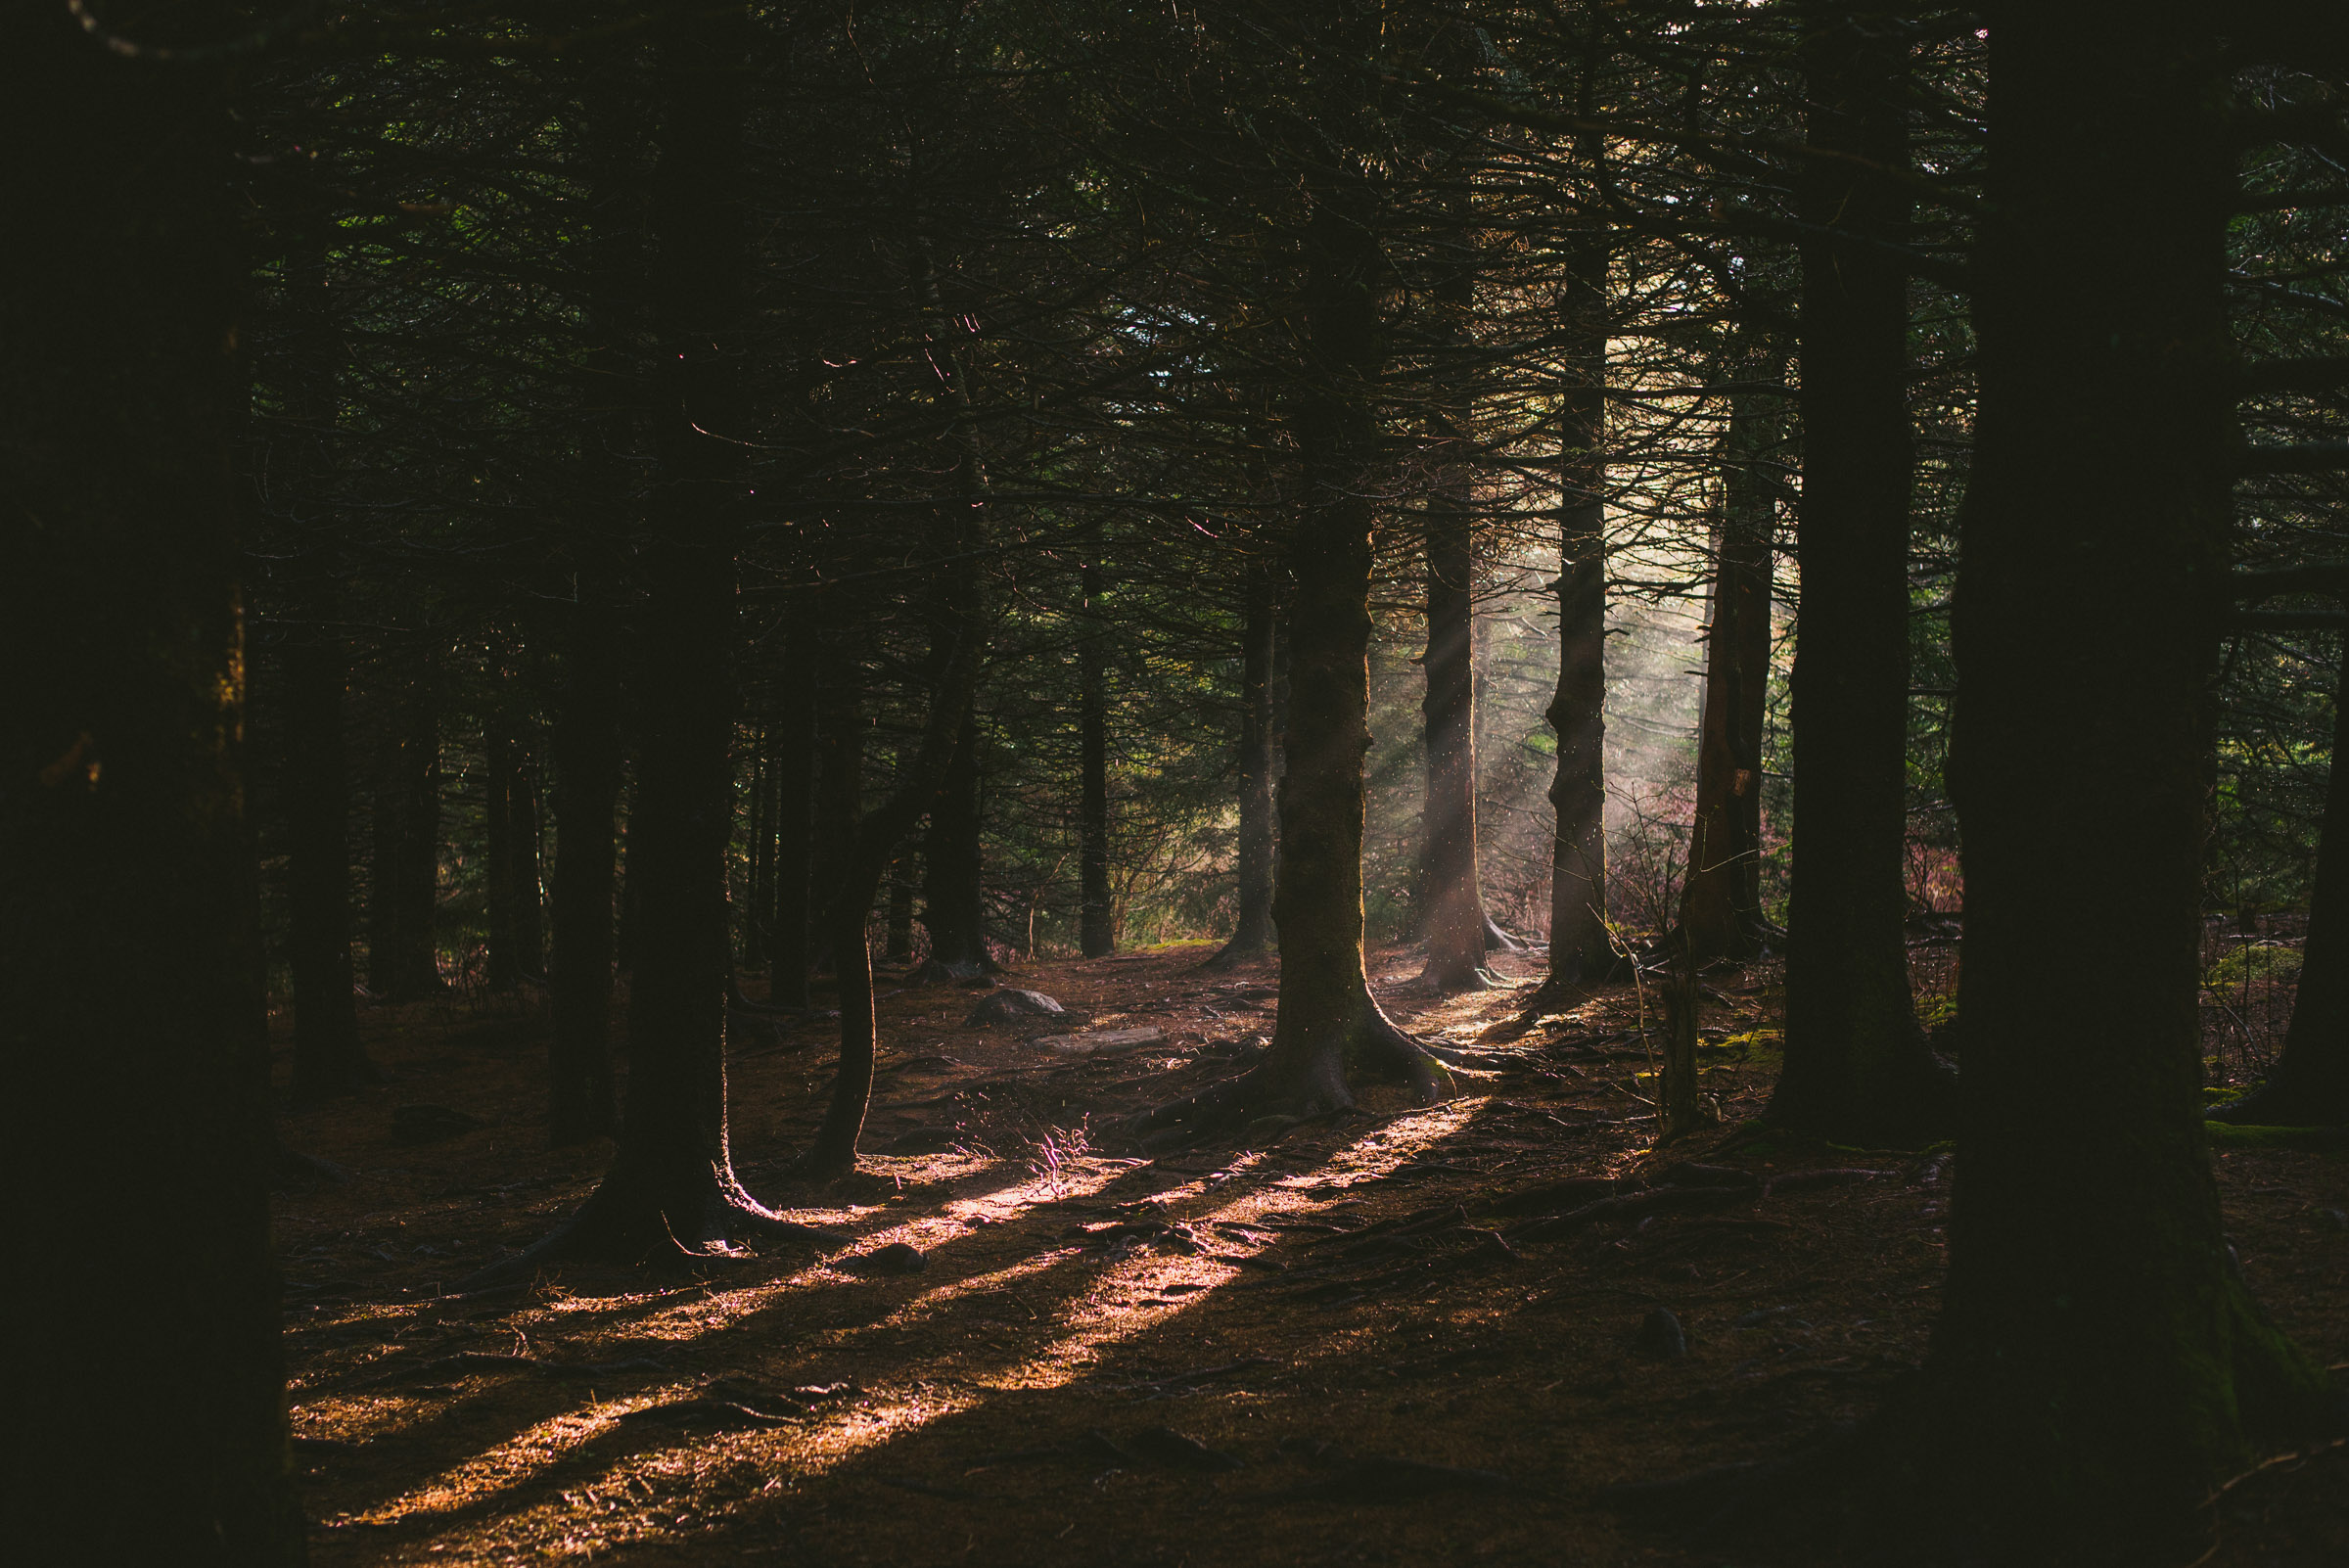 Dramatic light coming through a dense pine forest